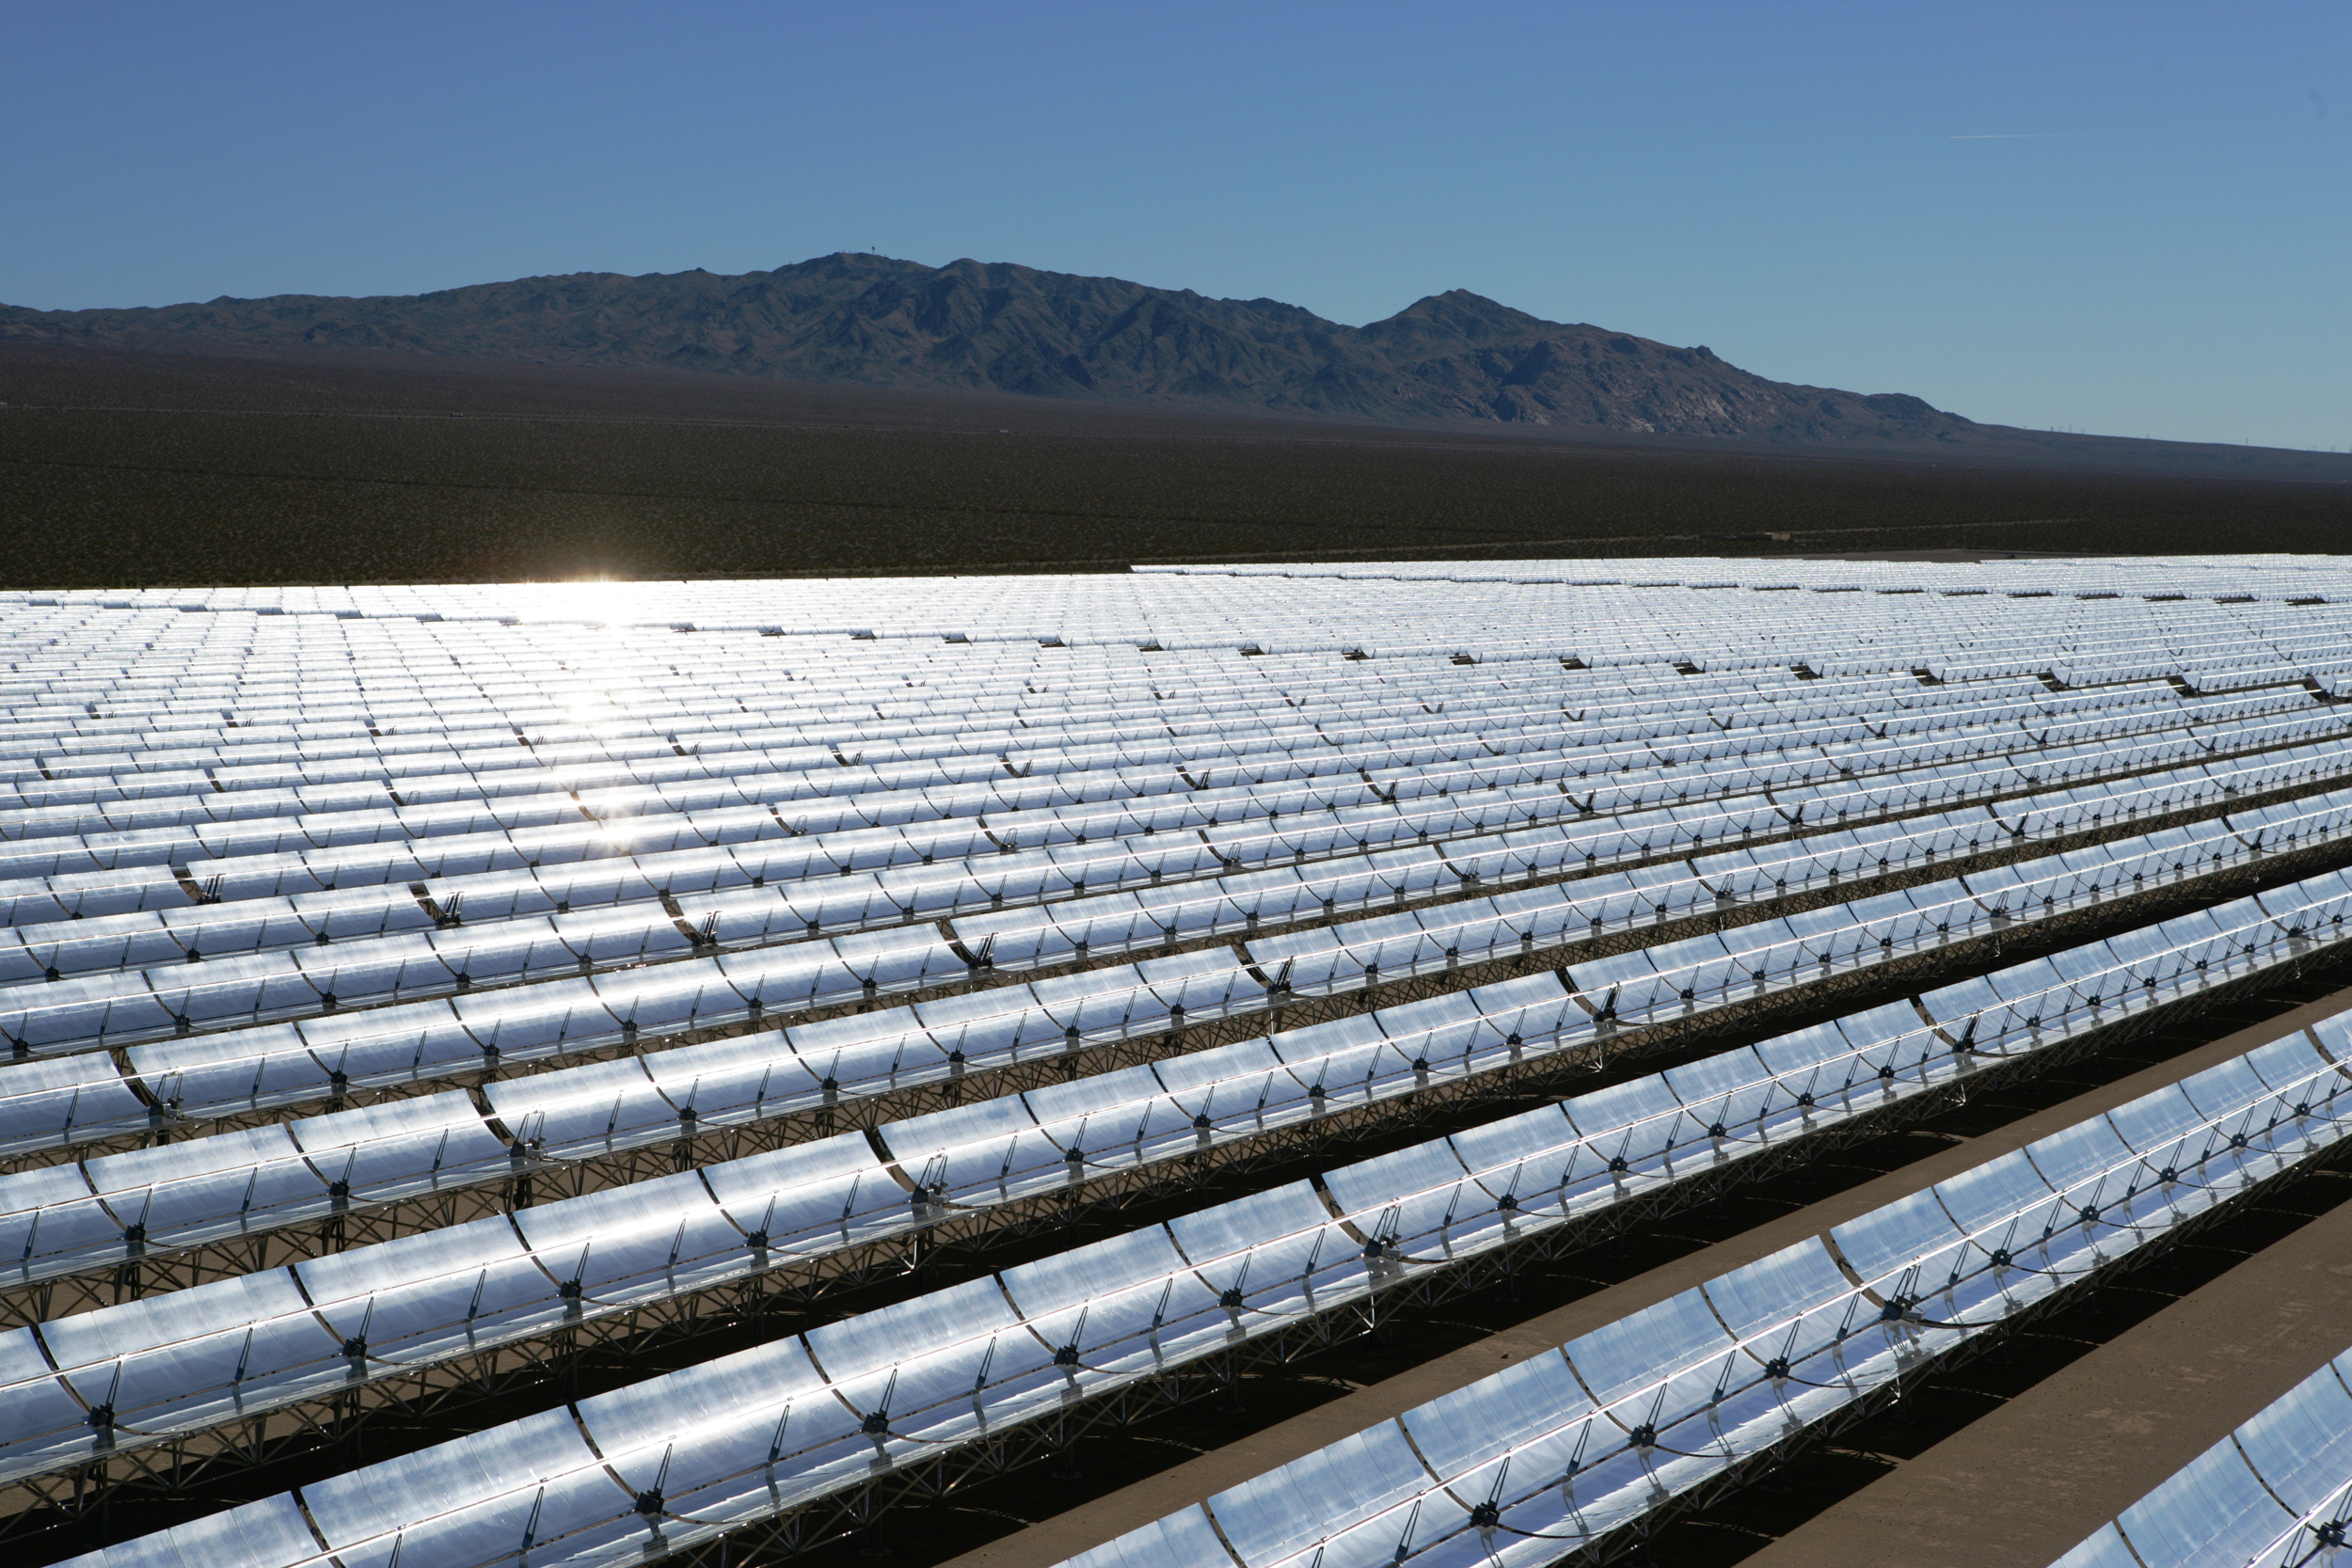 A solar thermal plant using parabolic troughs.